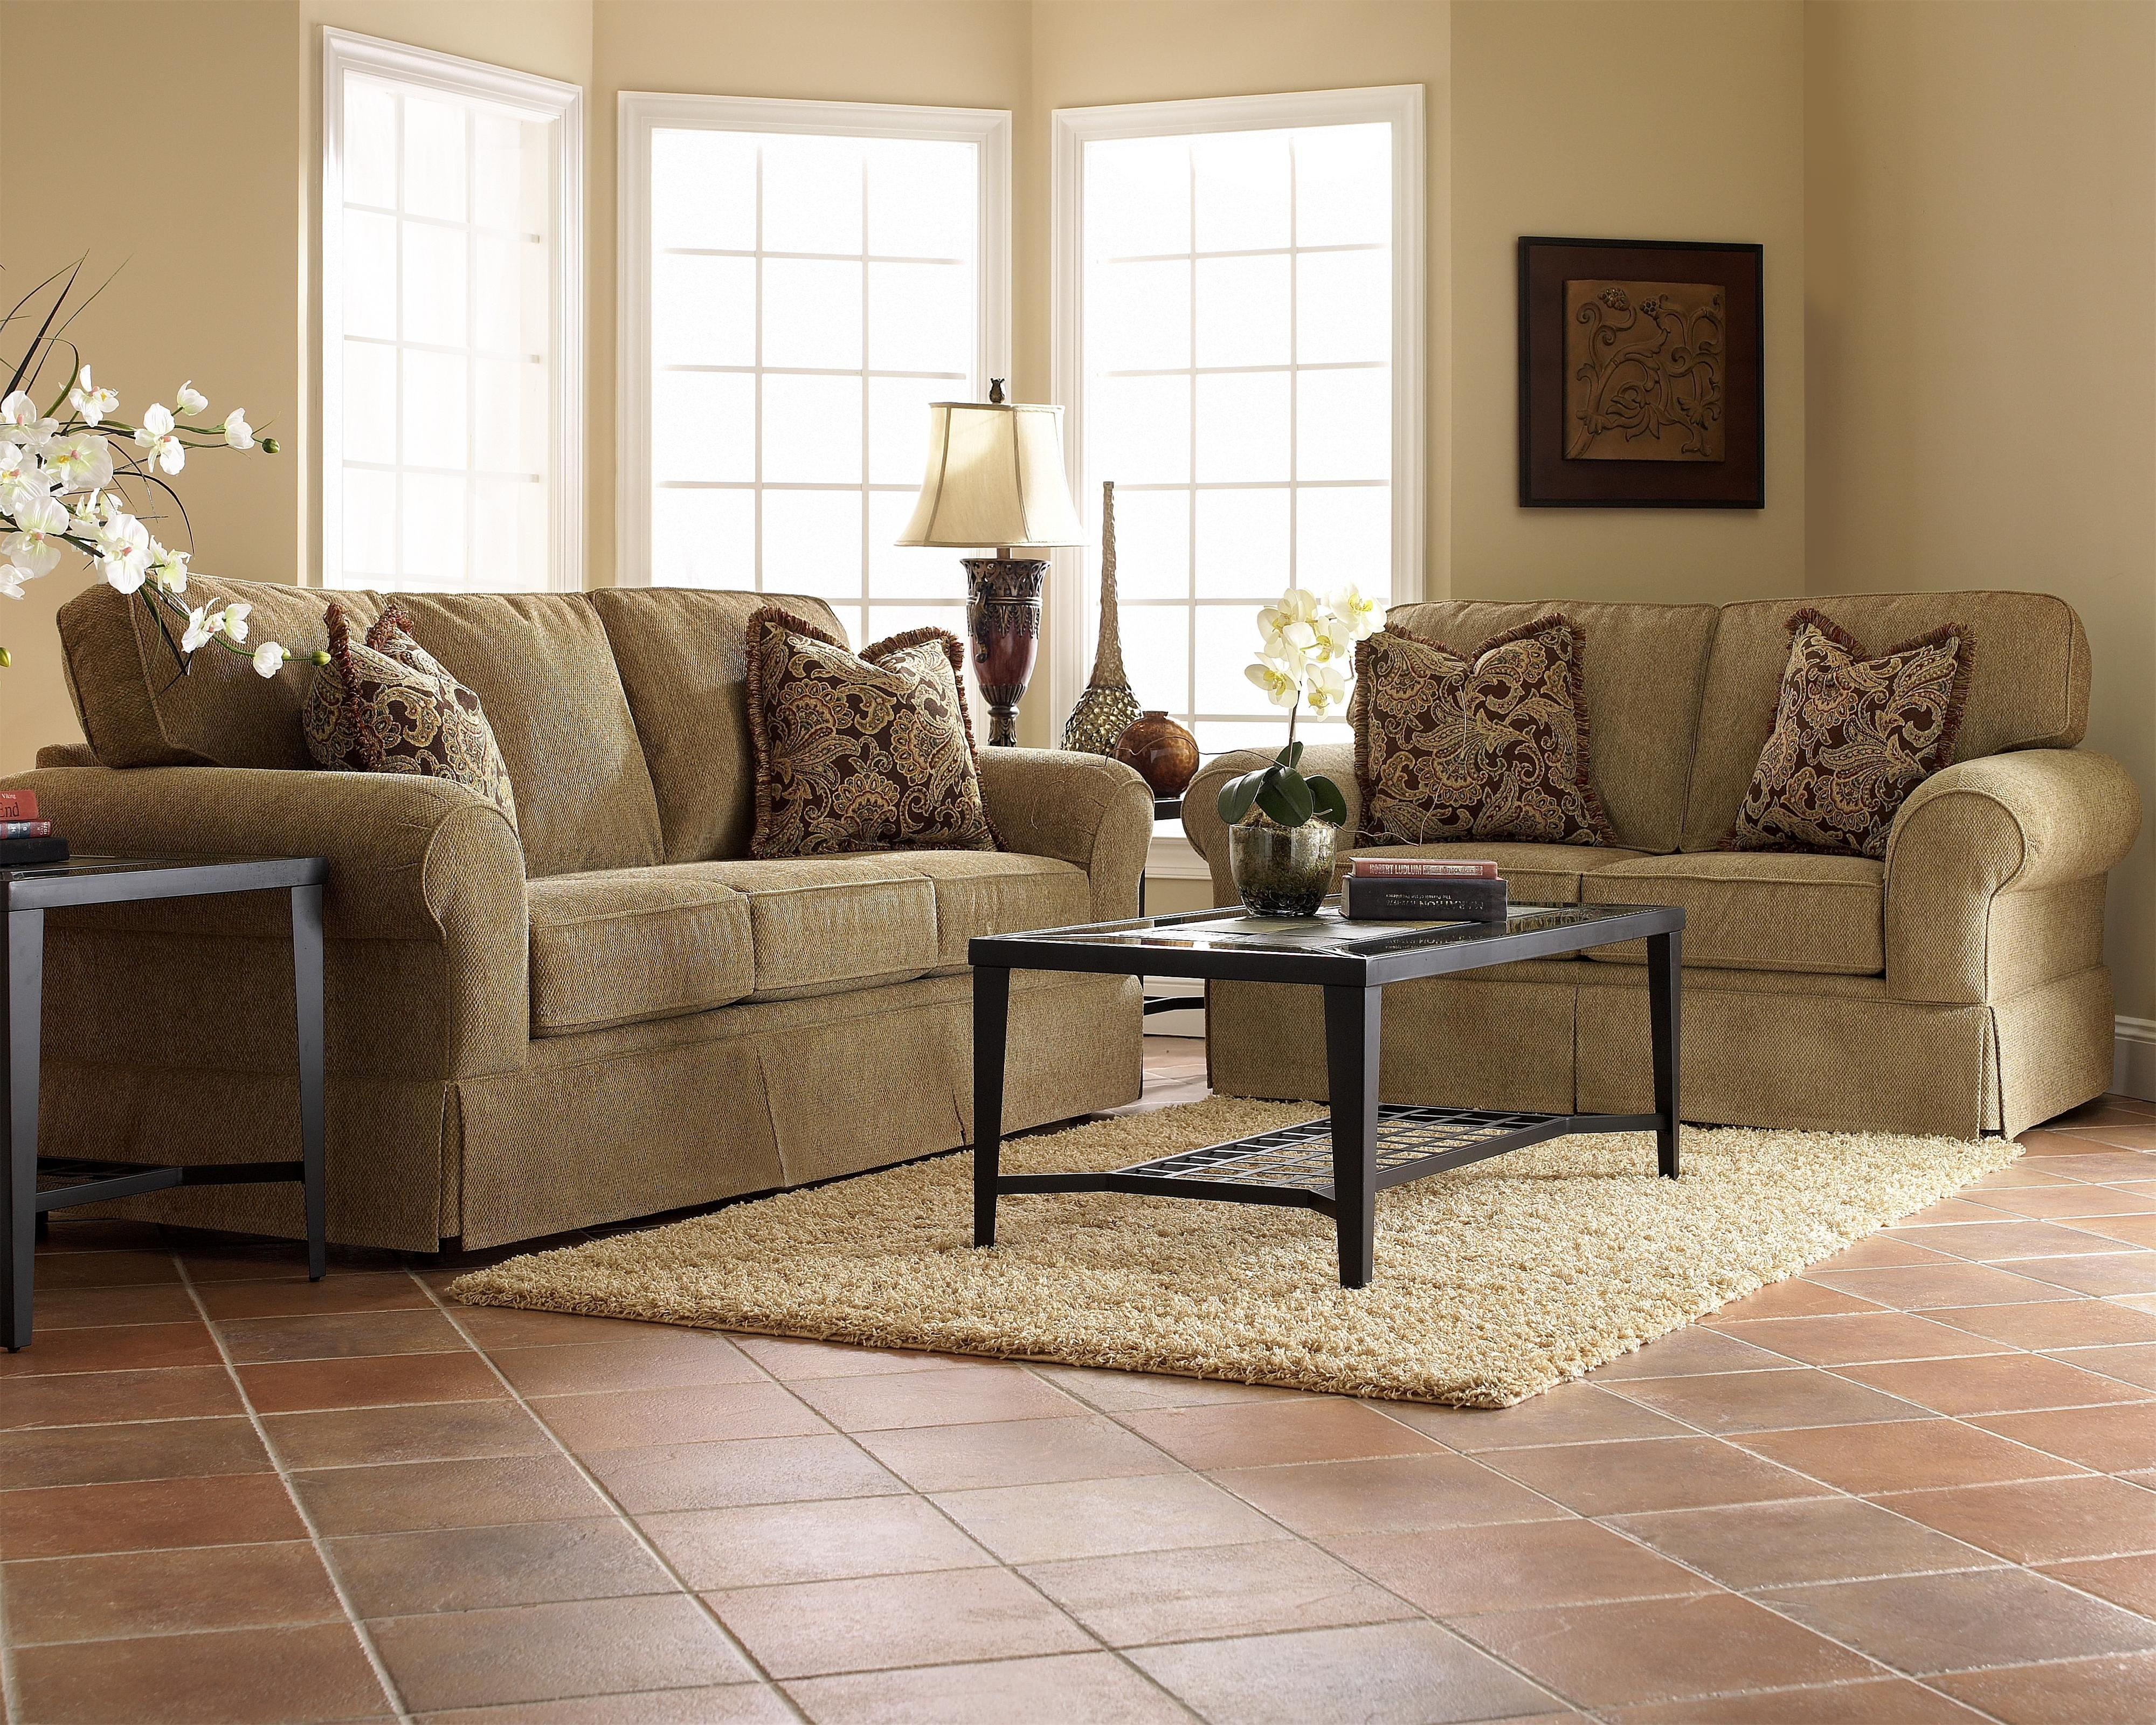 piece england cuddler furniture sofa and new ma boston rotmans sectional lsg item patina worcester collections couches right couch with providence small ri